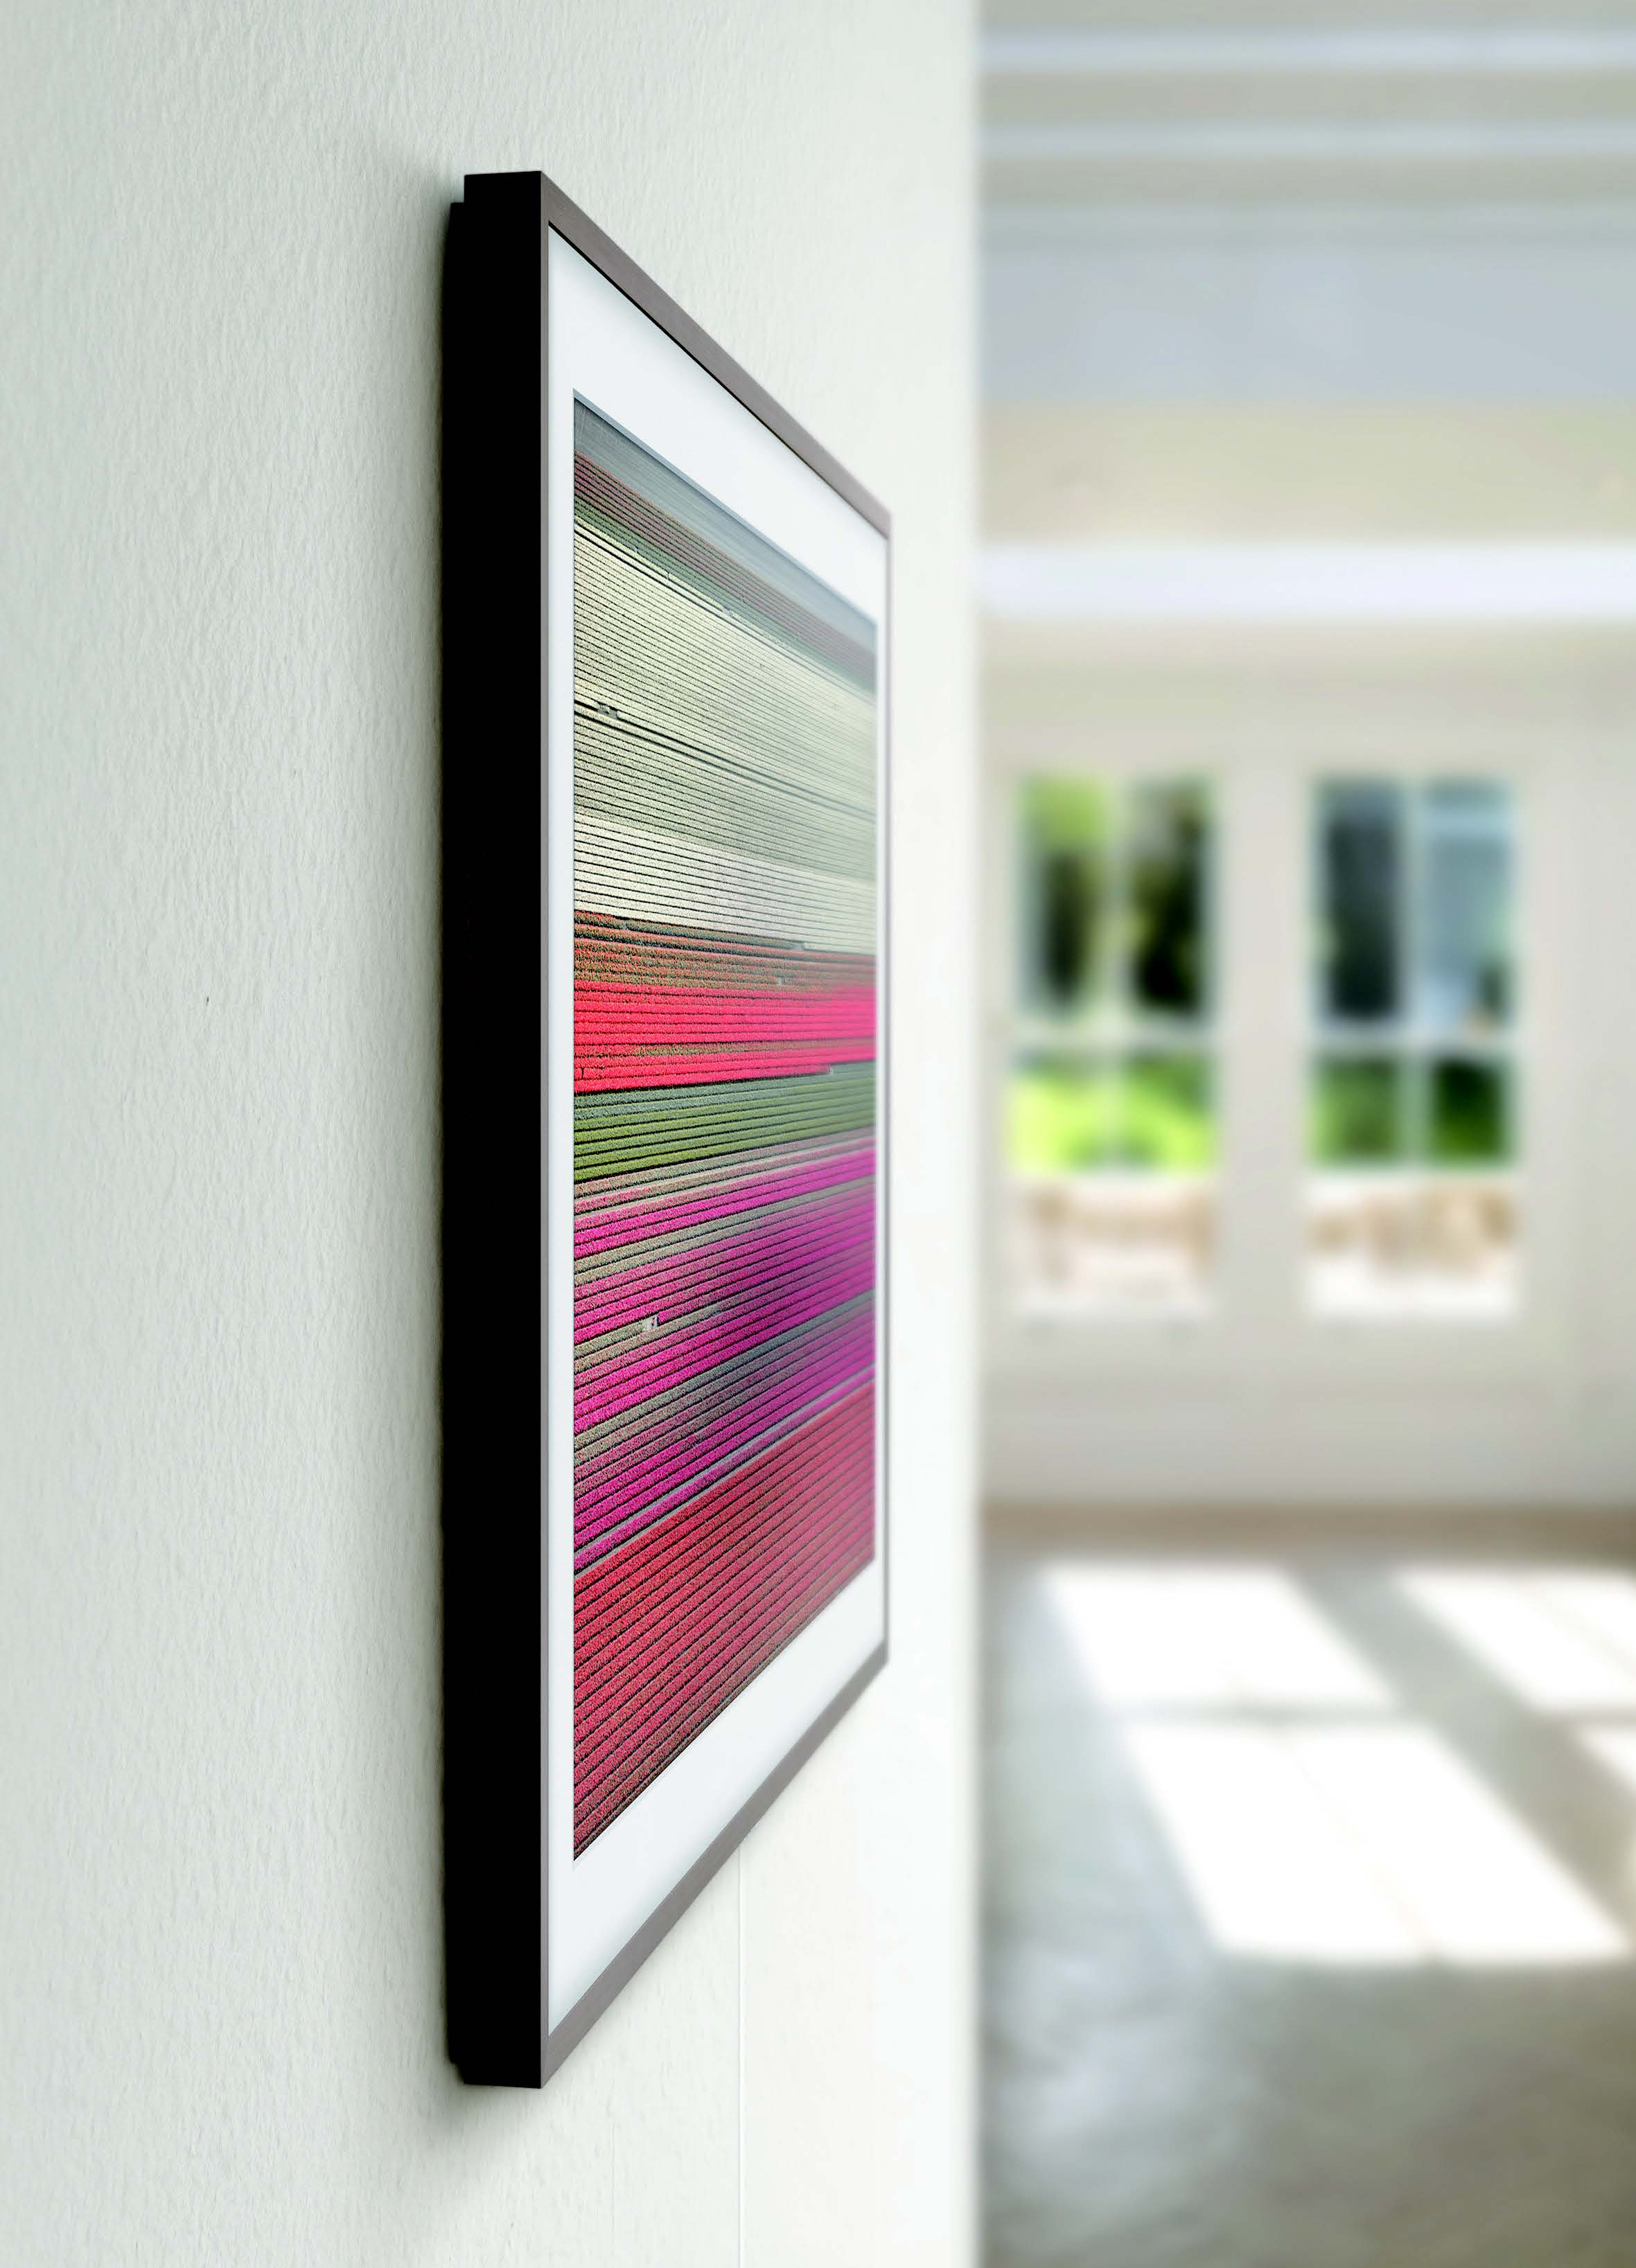 Framed Art TV Transform Your TV Into A Digital Canvass